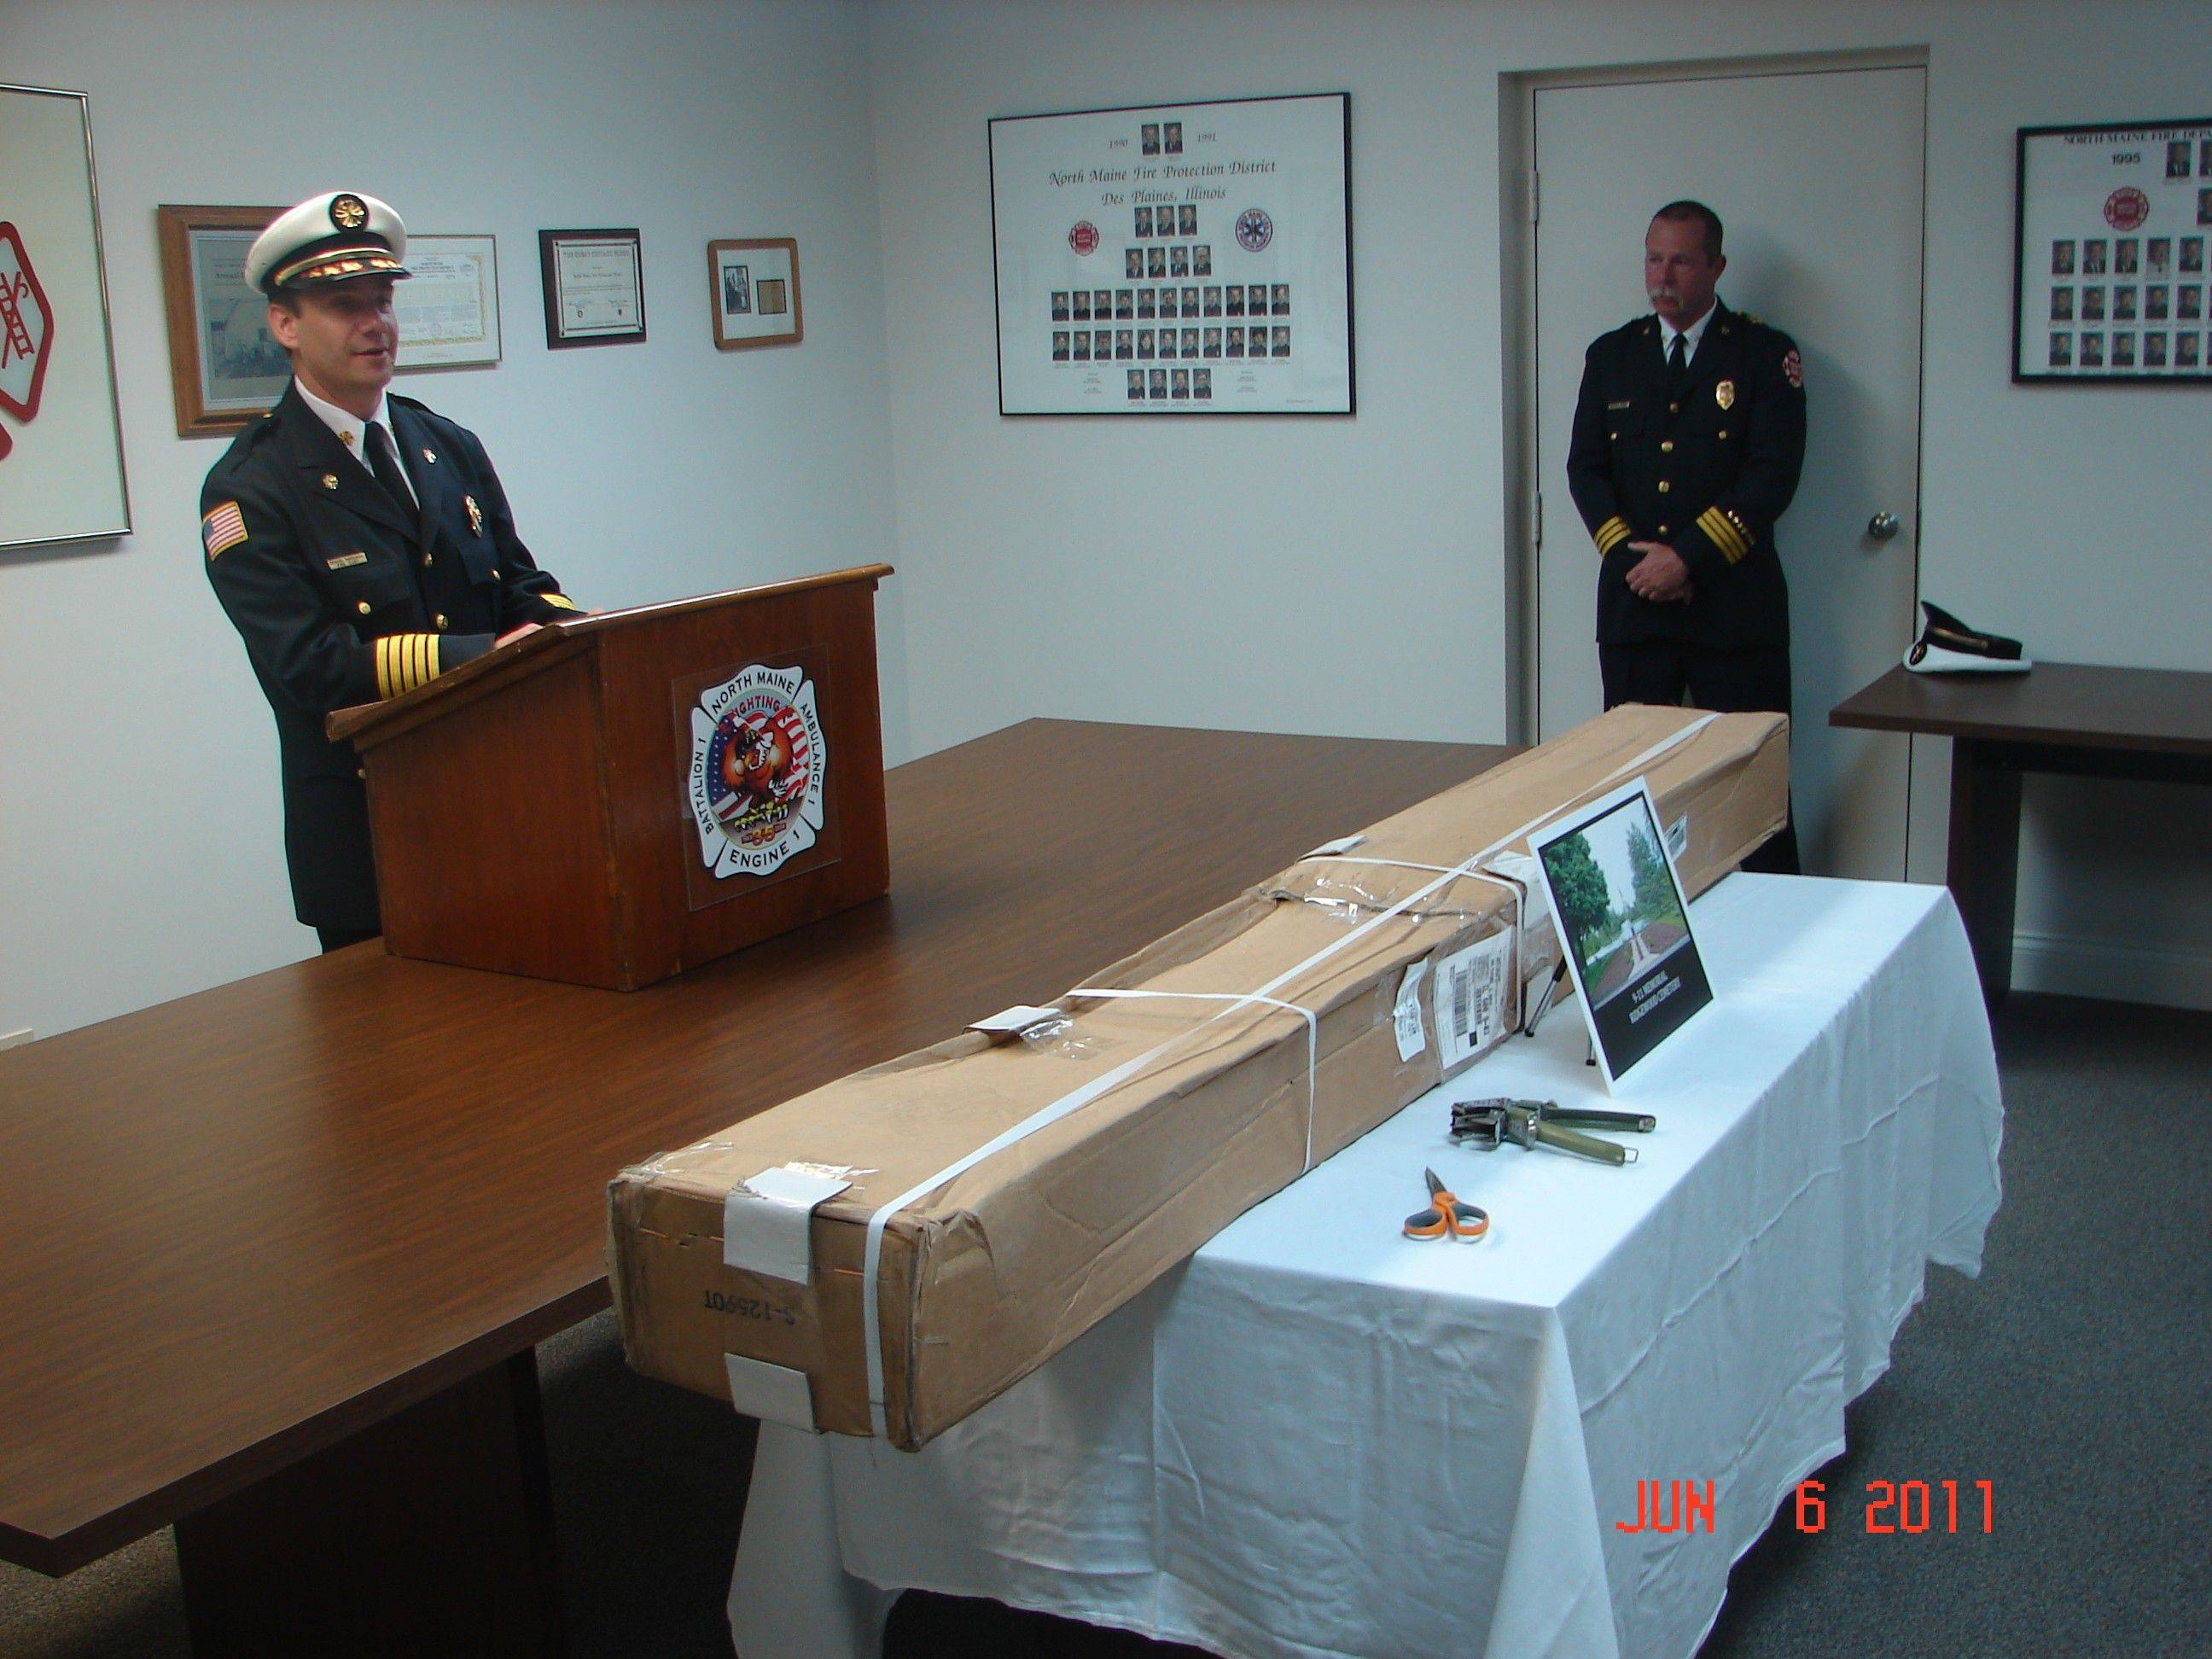 North Maine Fire Chief Rick Dobrowski, left, addresses a crowd gathered for this week's unveiling of a steel artifact salvaged from the World Trade Center towers in New York City after the Sept. 11, 2001 terror attacks.